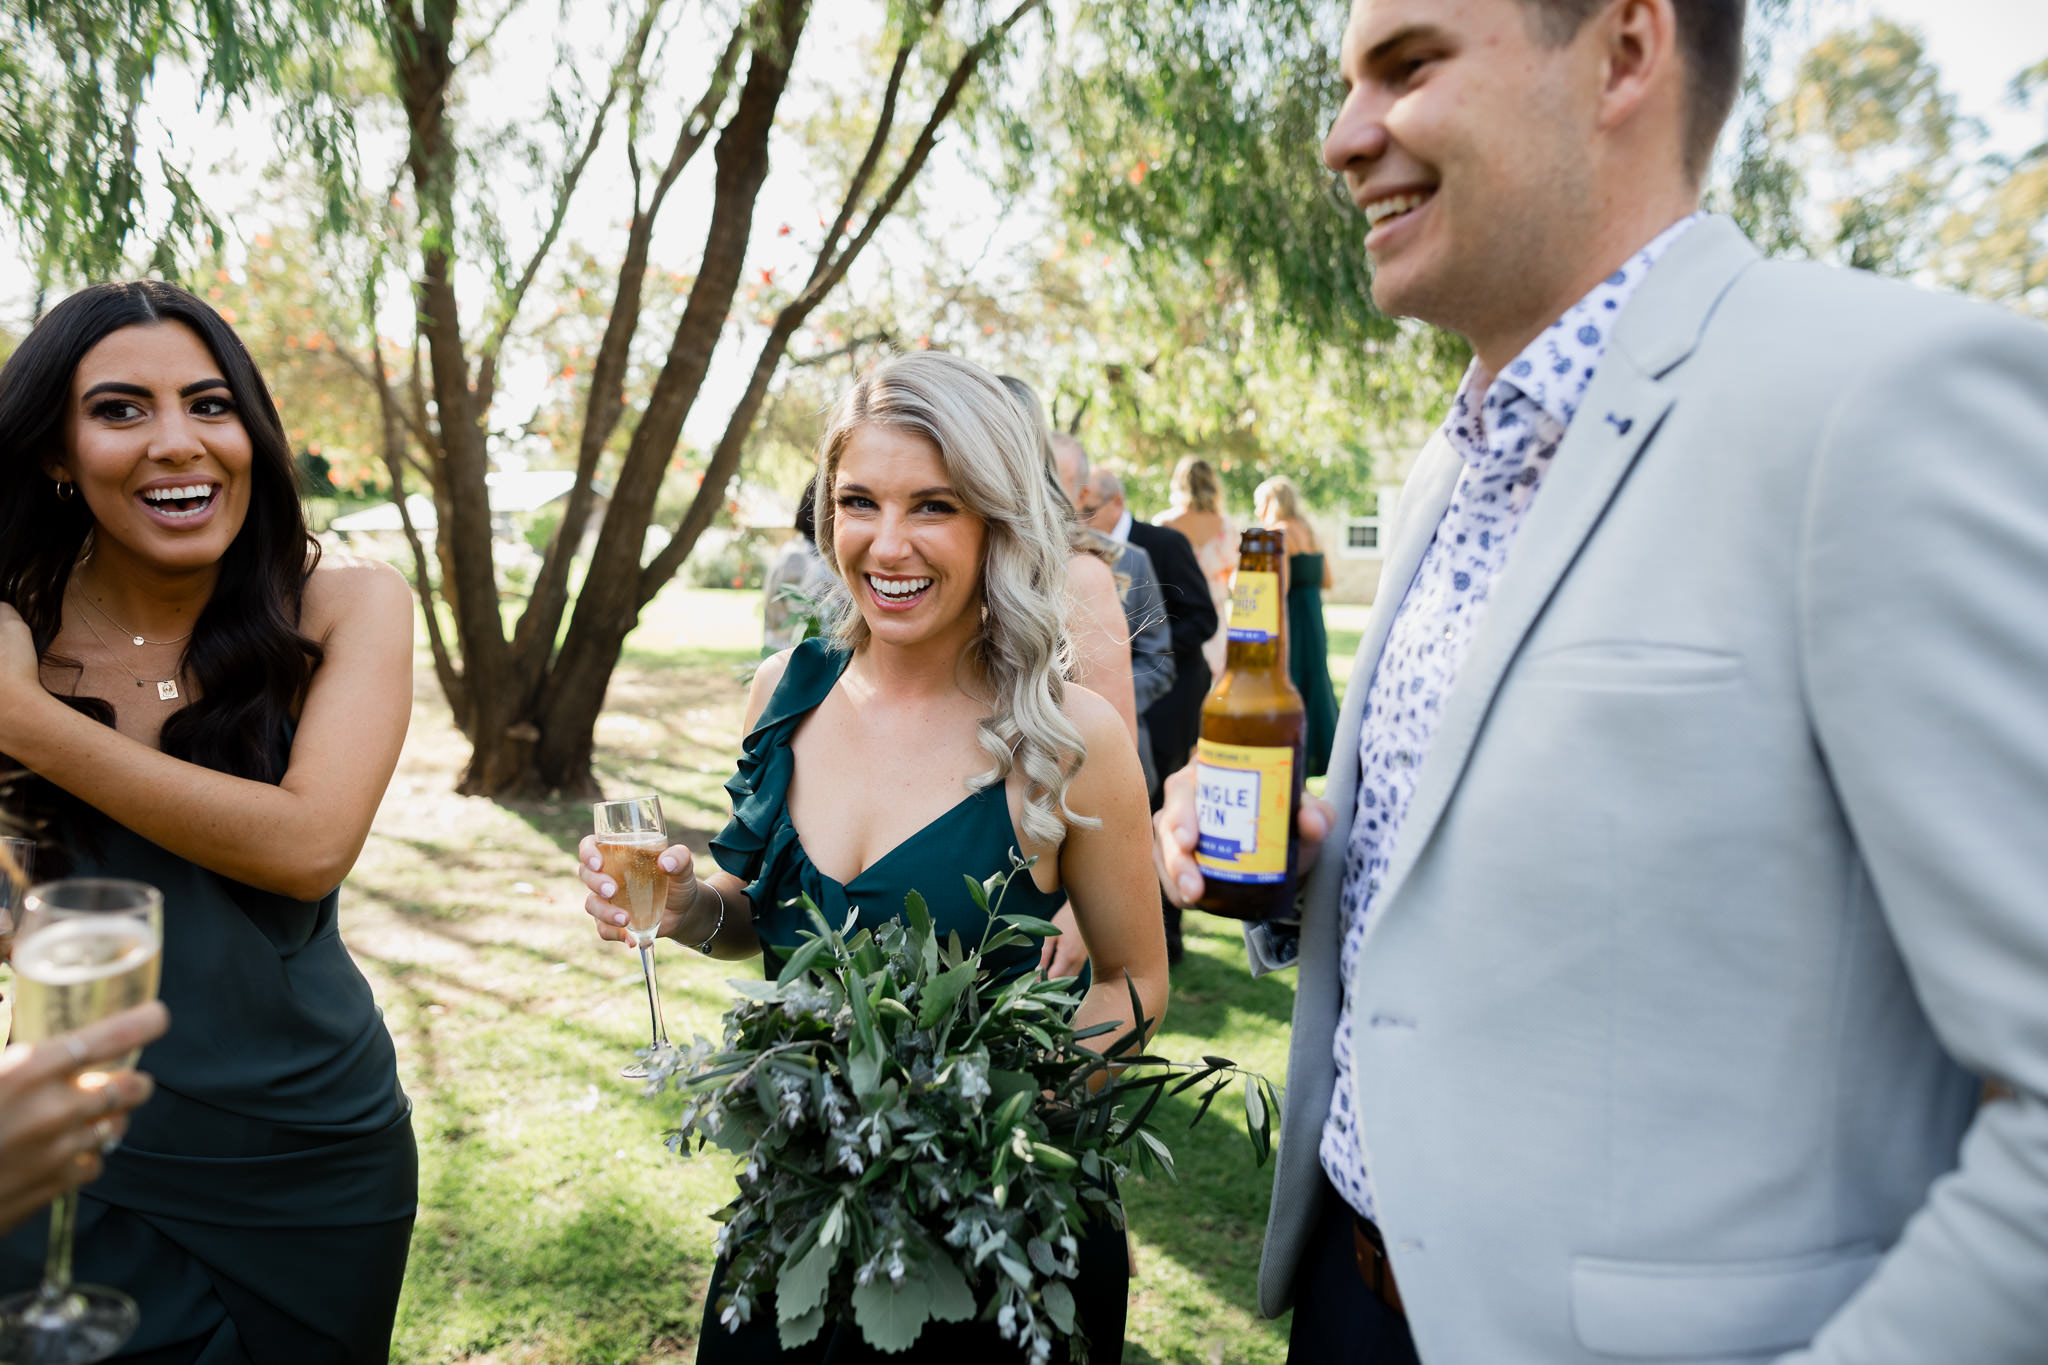 blonde bridesmaid in green dress holding champagne and bouquet laughing and smiling with other wedding guests